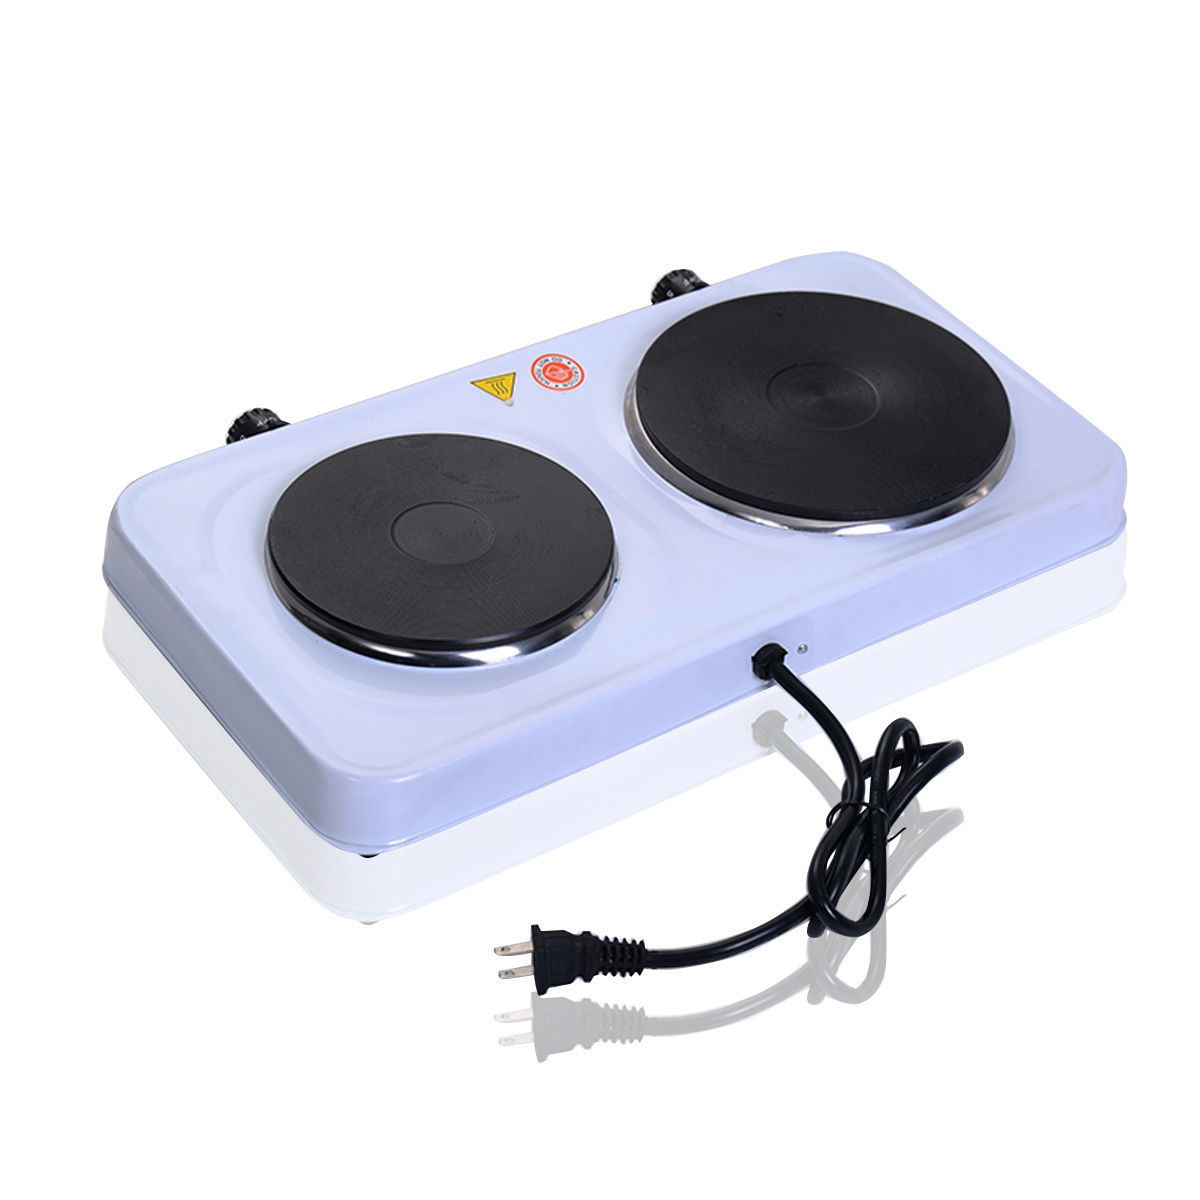 Costway Electric Double Burner Hot Plate Portable Stove Heater Countertop Cooking